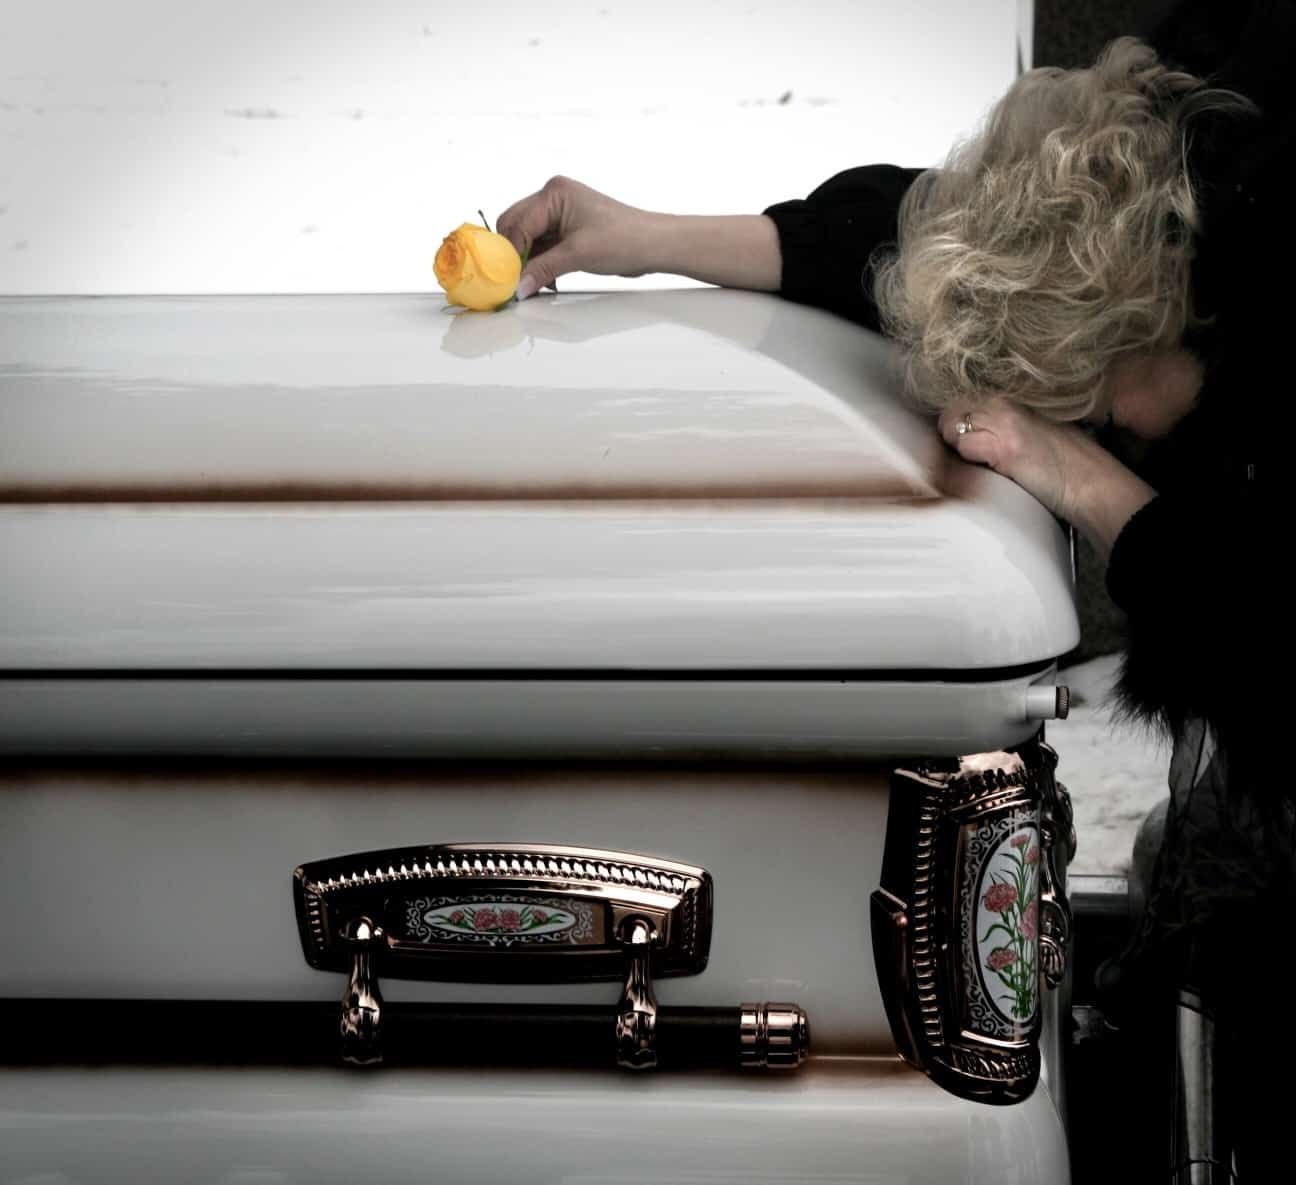 Woman laying over casket with a rose